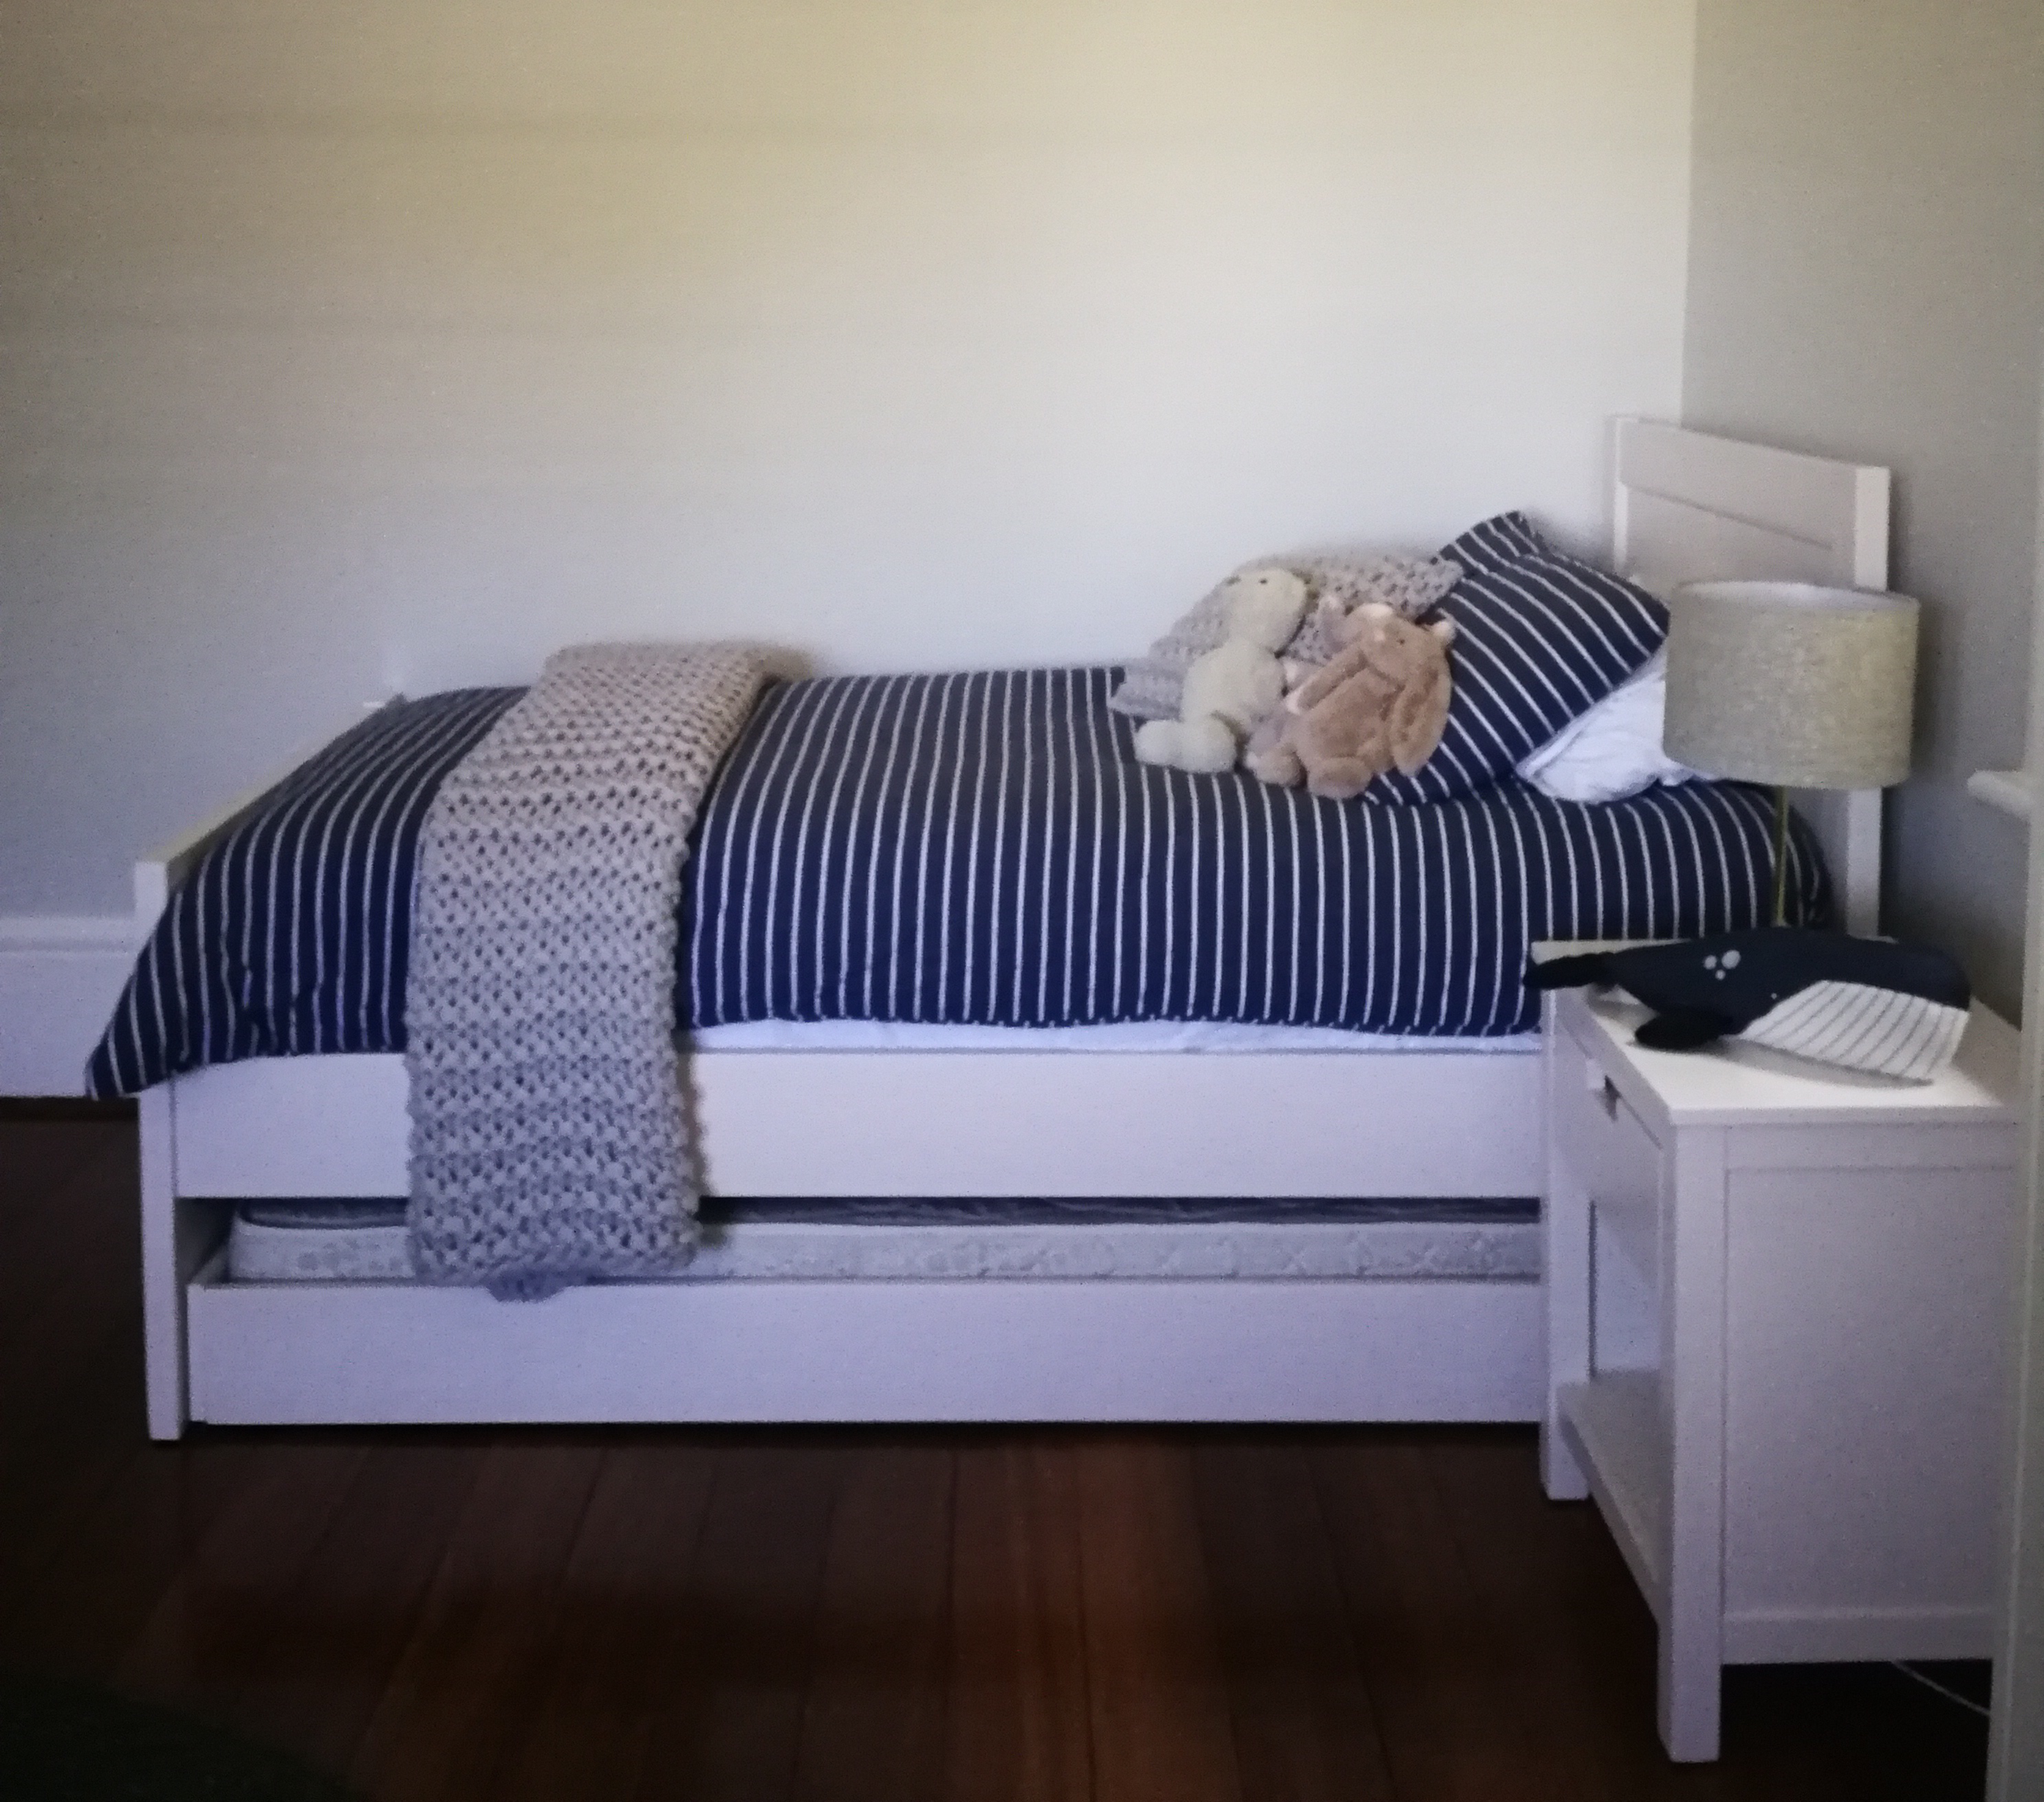 The white painted furniture contrasts beautifully against the original jarrah floorboards. A little nightstand holds precious things and a lamp for bedtime stories. The bed, from Out of the Cot, has removeable side rail and a trundle for future sleepovers.